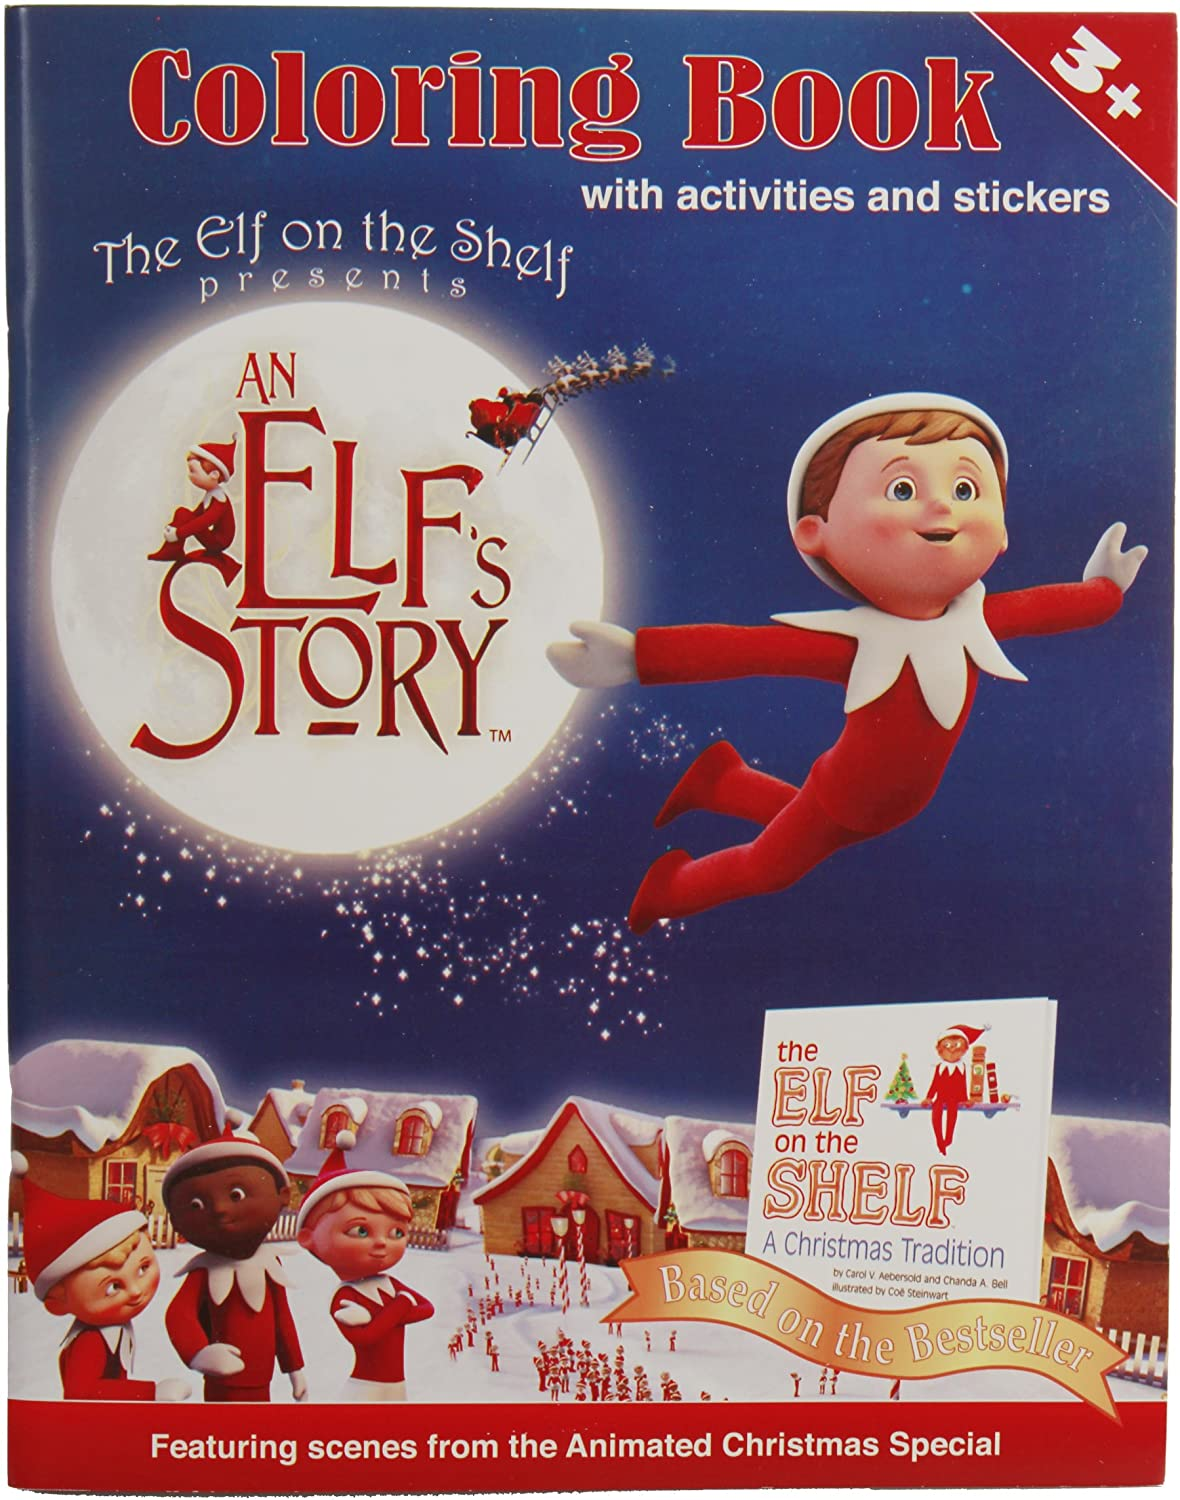 - Amazon.com: An Elf's Story Coloring Book: Toys & Games